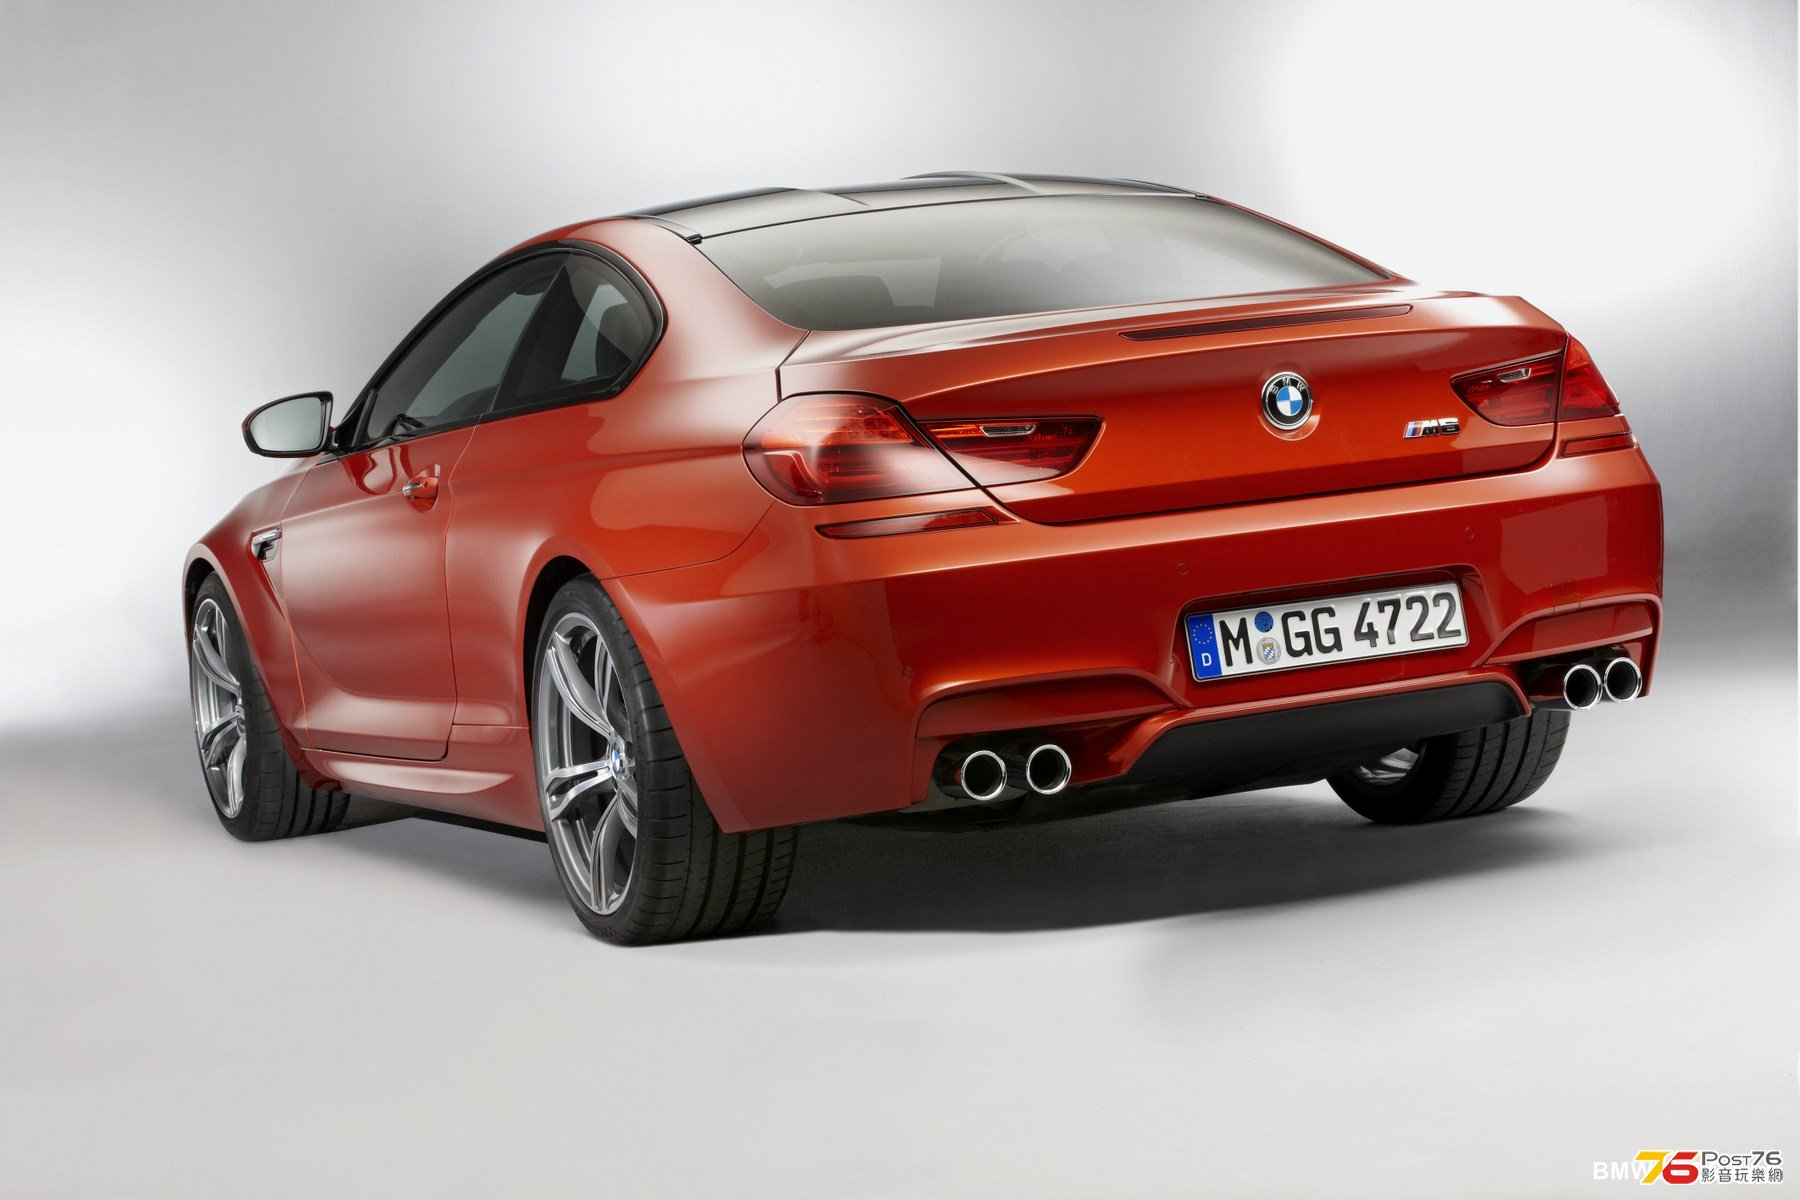 2013_BMW_M6_Coupe_07.jpg